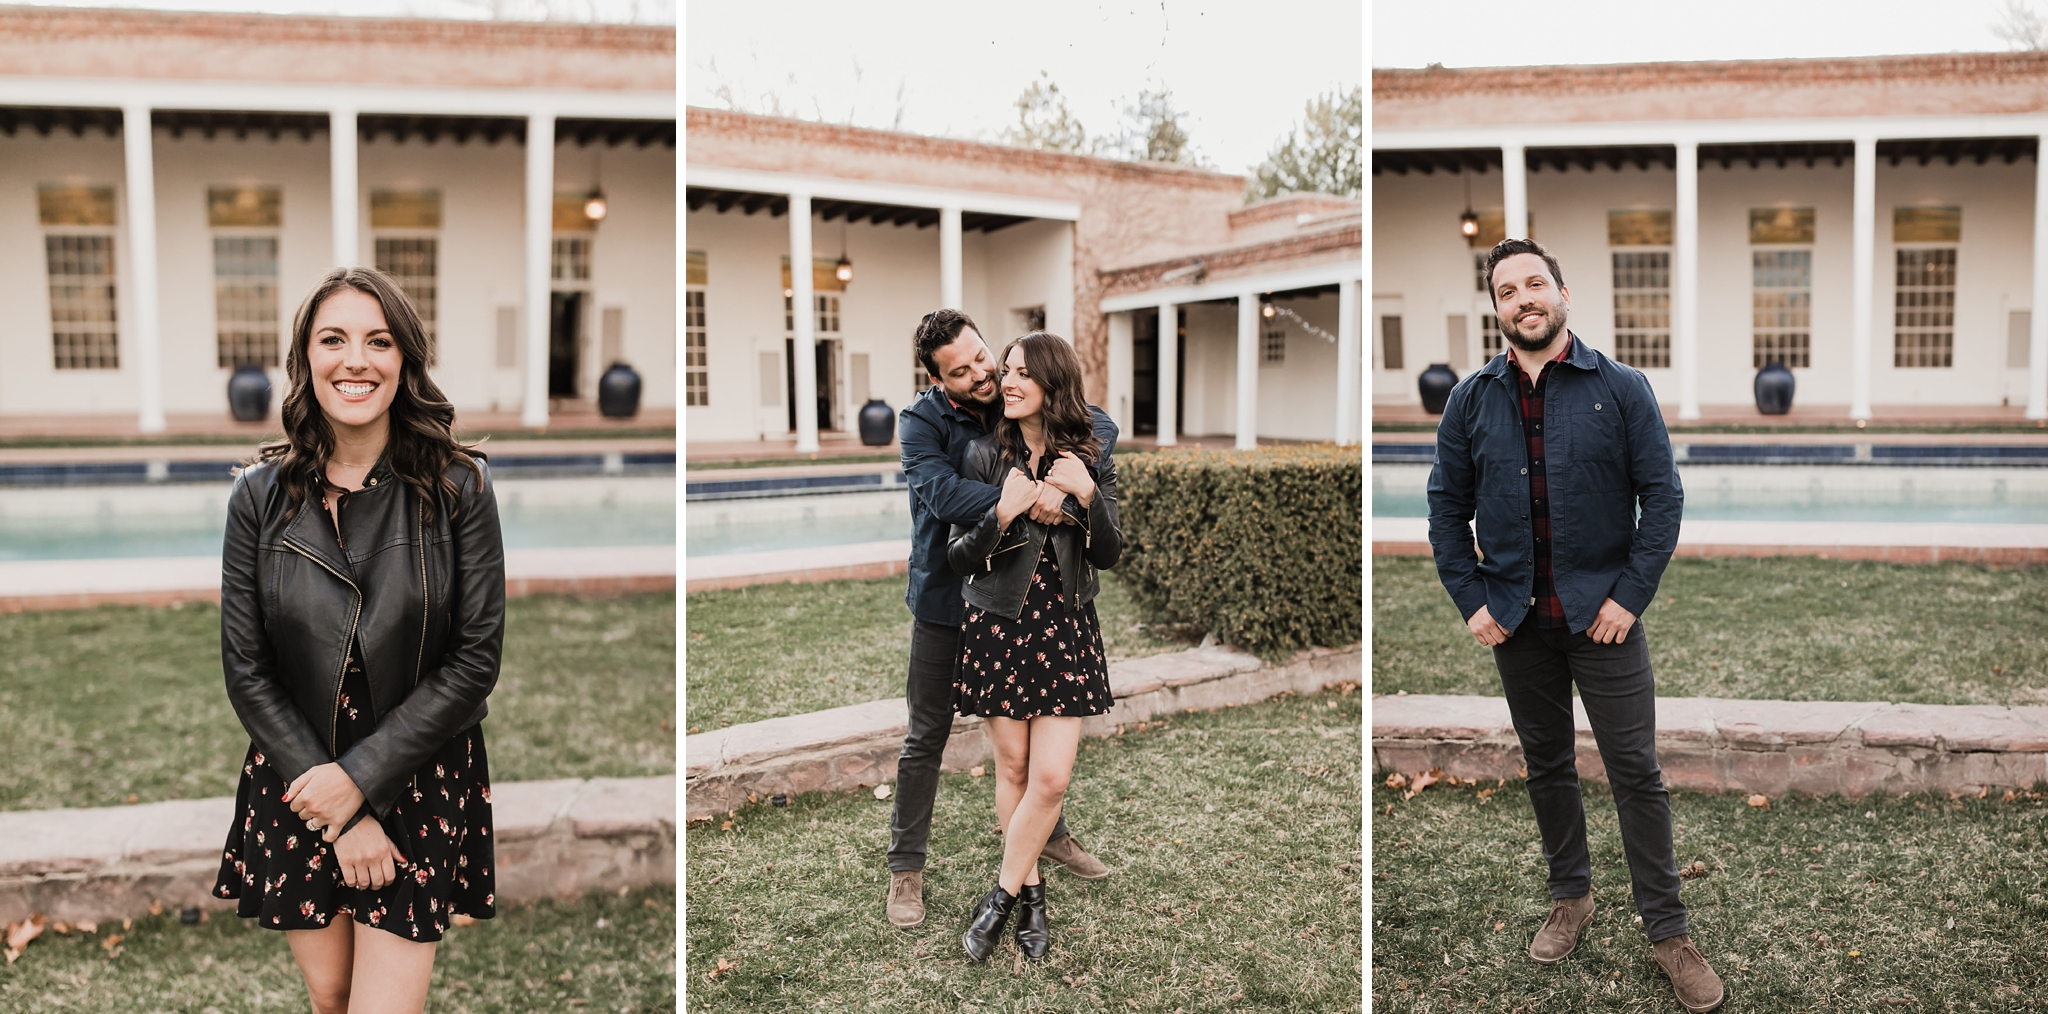 Alicia+lucia+photography+-+albuquerque+wedding+photographer+-+santa+fe+wedding+photography+-+new+mexico+wedding+photographer+-+new+mexico+wedding+-+new+mexico+engagement+-+los+poblanos+engagement+-+los+poblanos+wedding+-+fall+wedding_0021.jpg